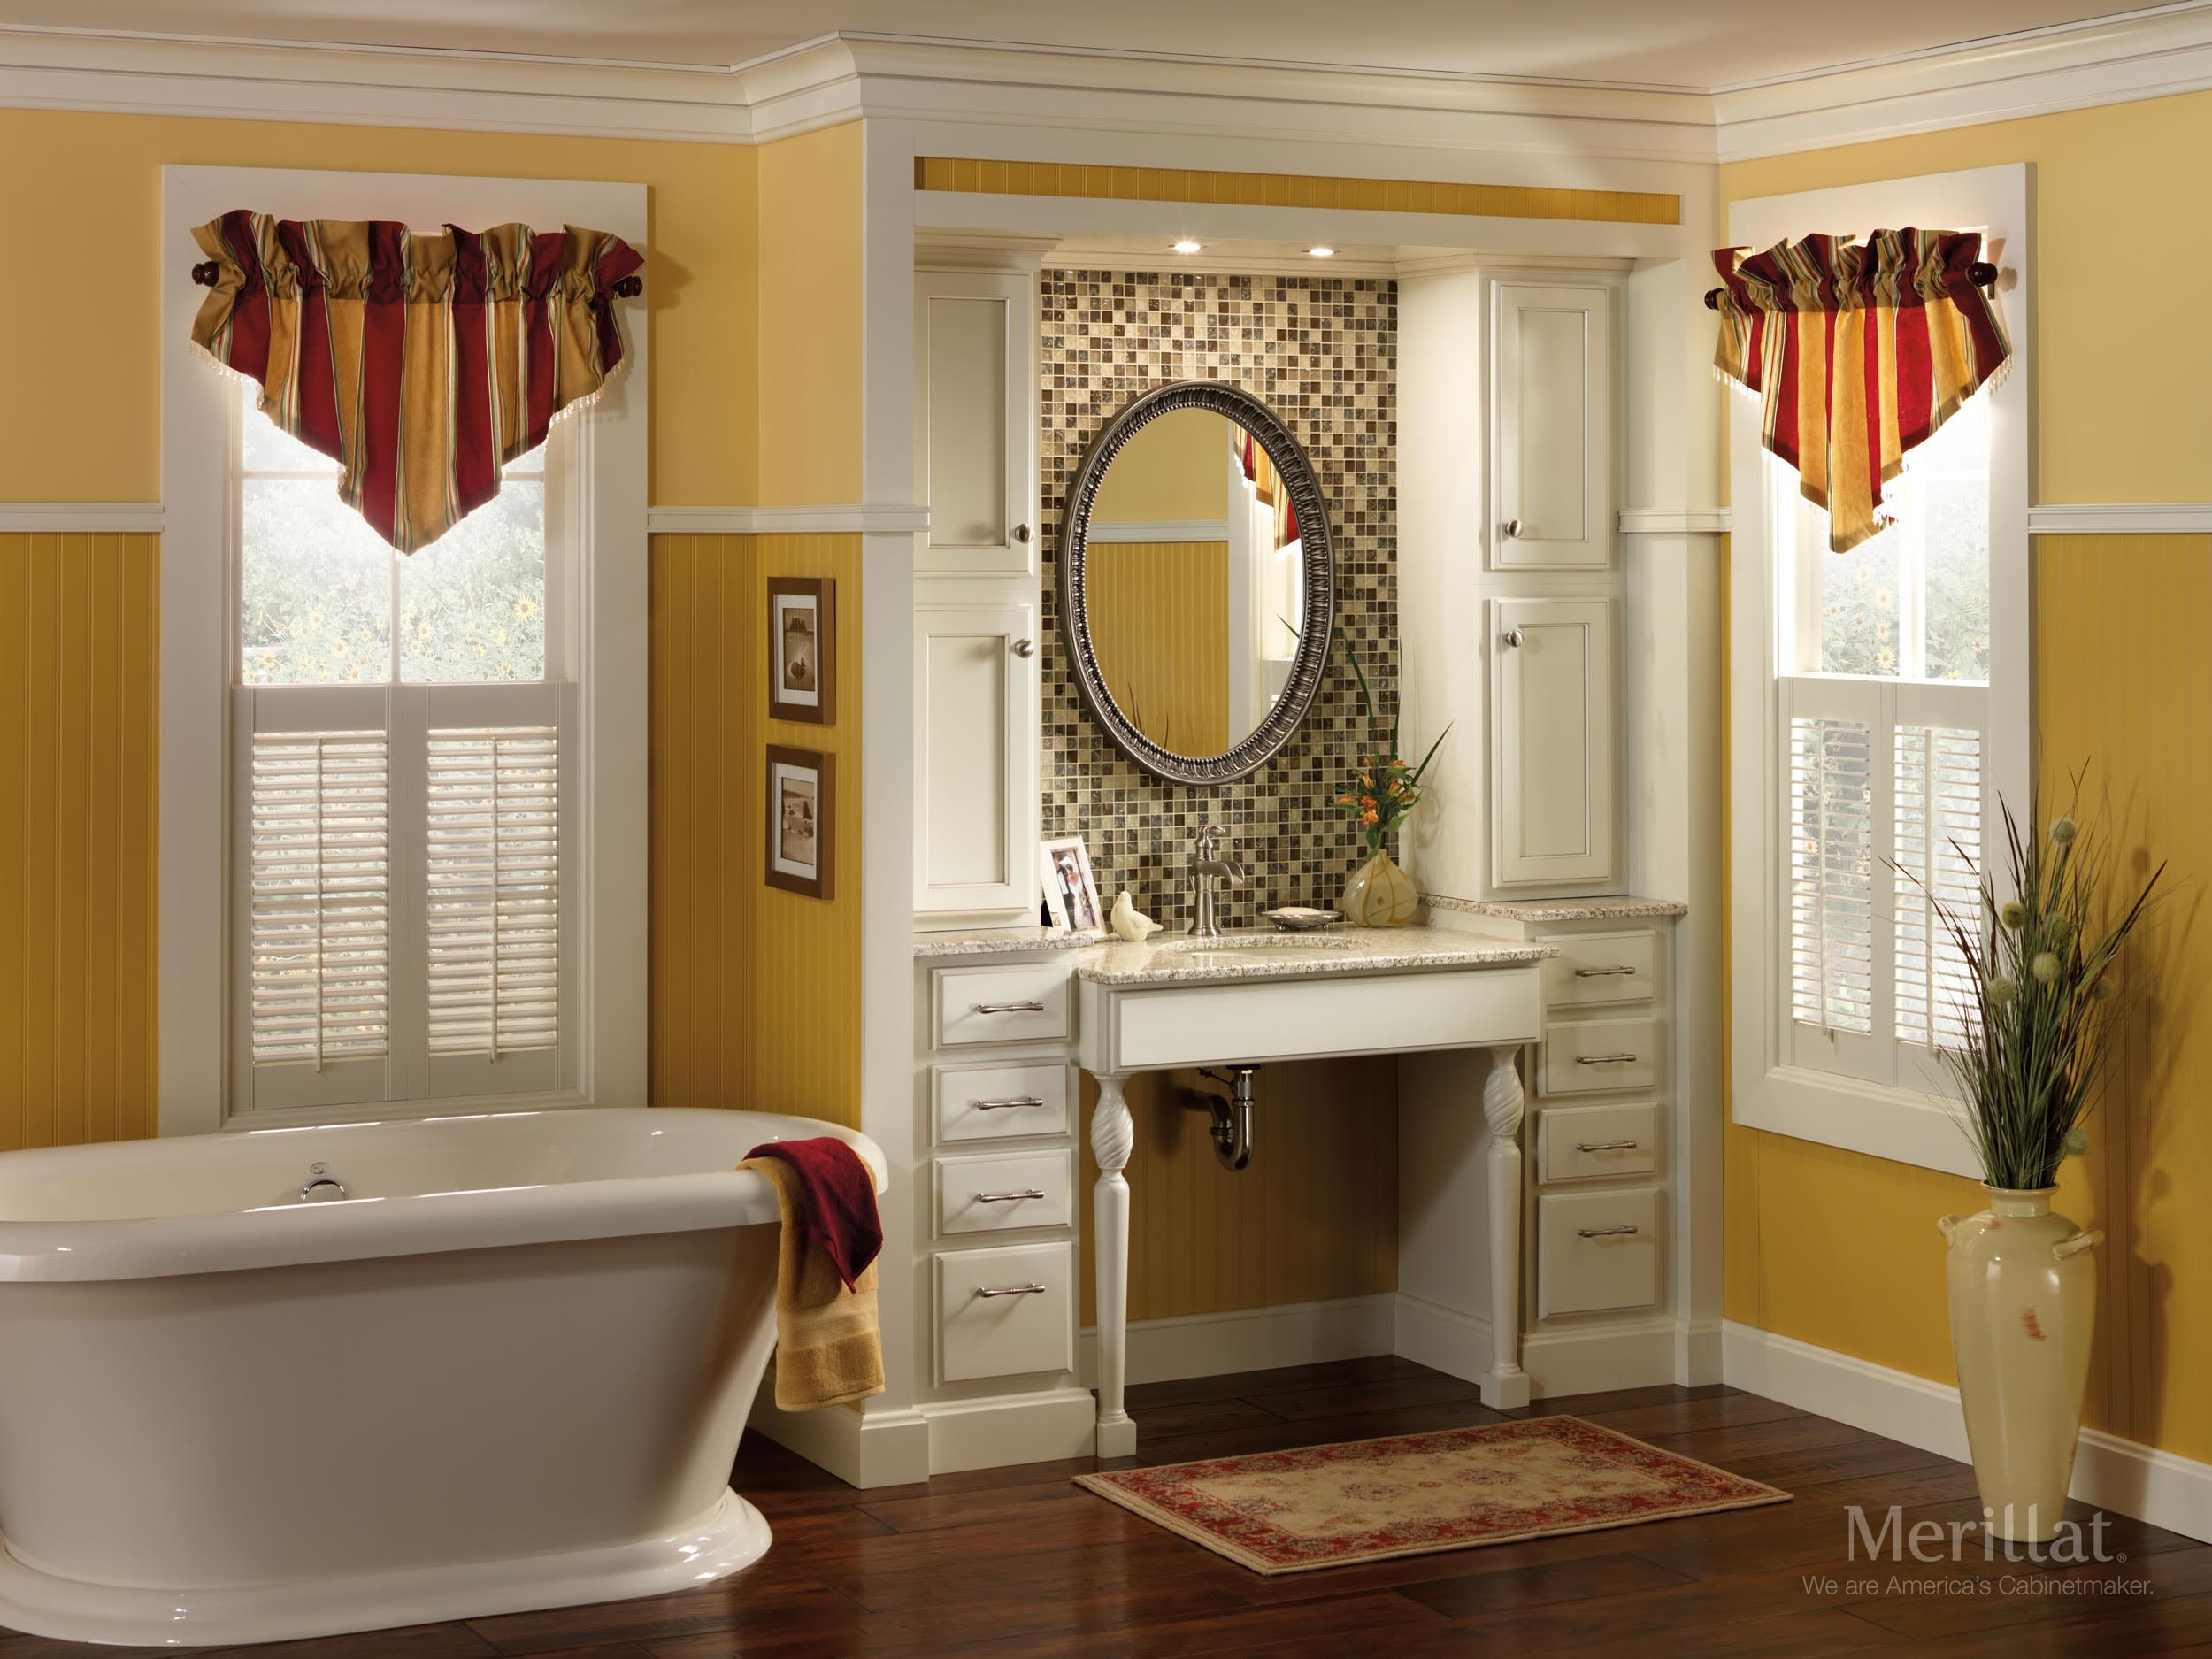 merillat classic spring valley in maple chiffon with tuscan download room image